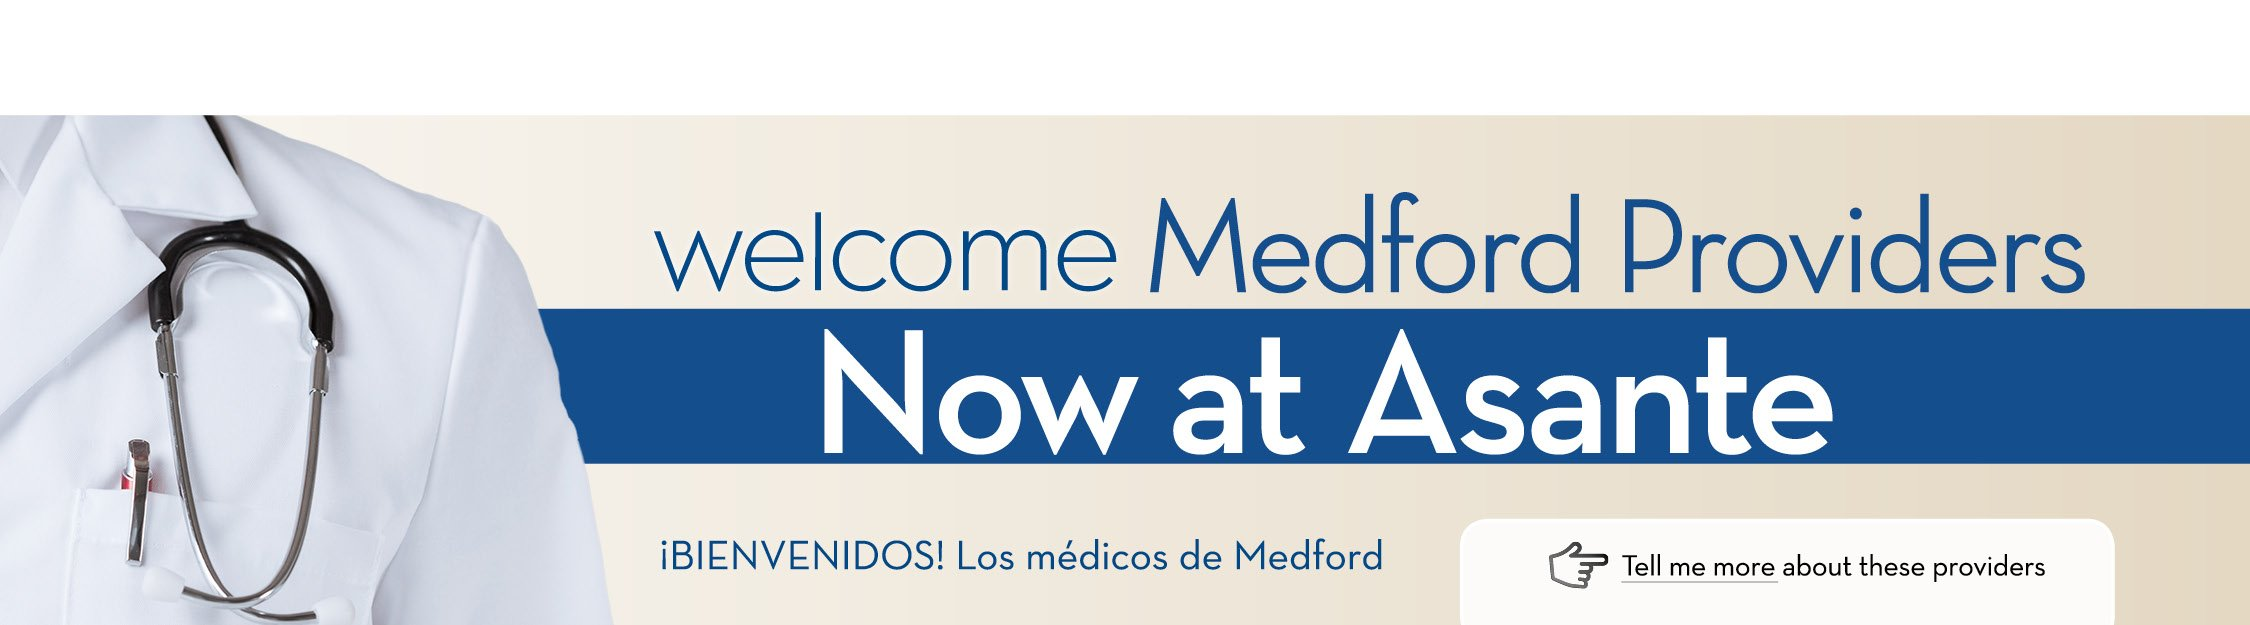 Welcome New Medford Providers